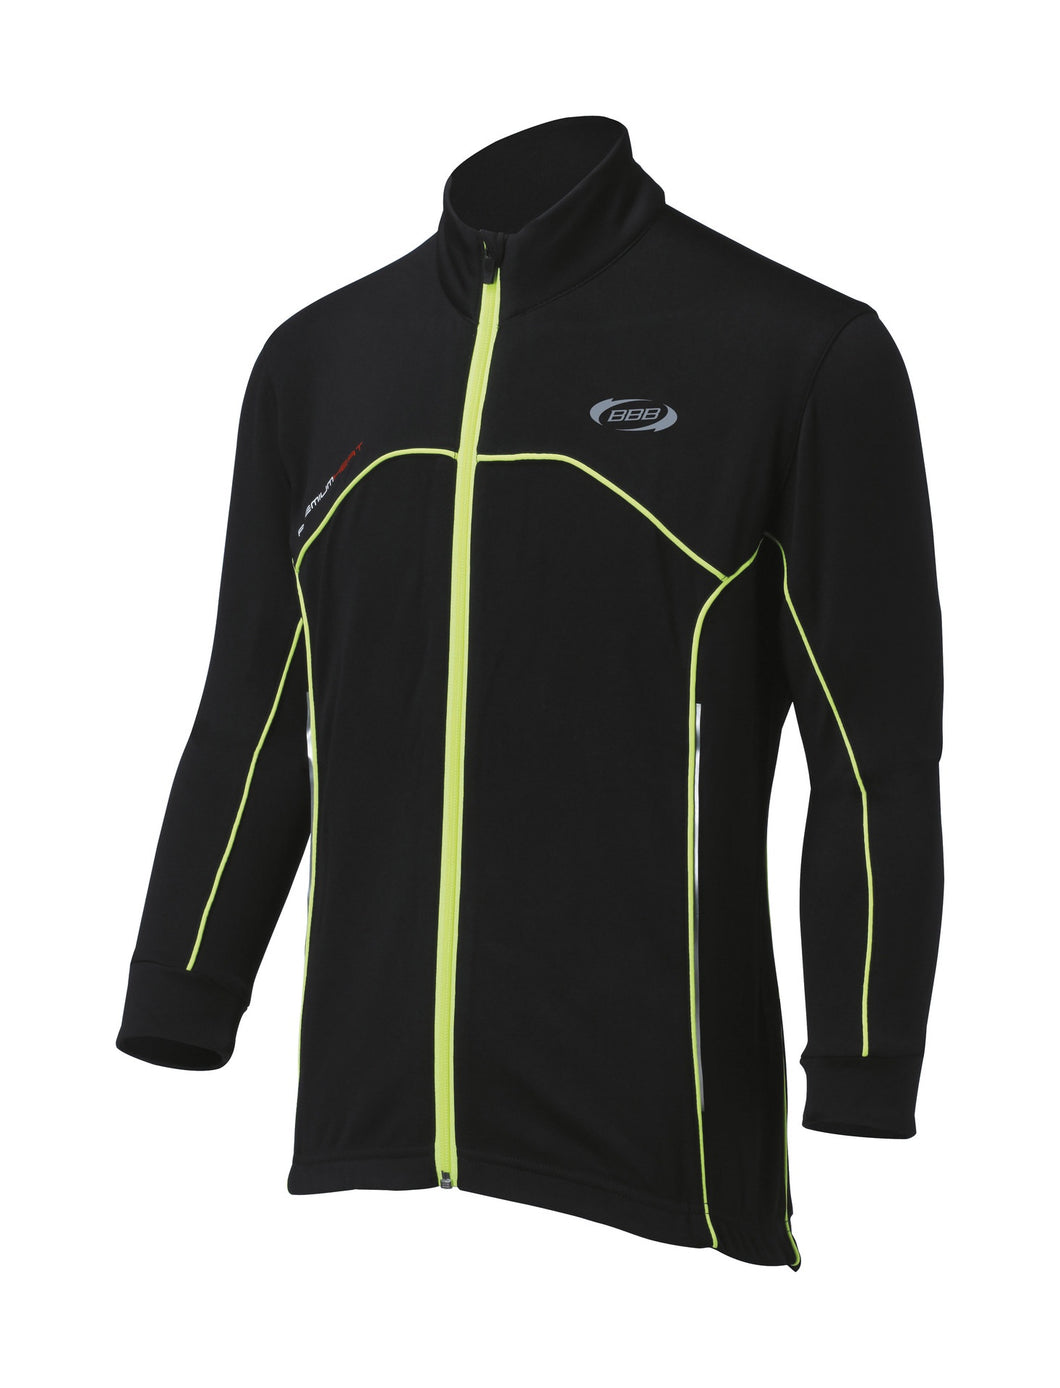 EasyShield Light Jacket (Black & Yellow, L)